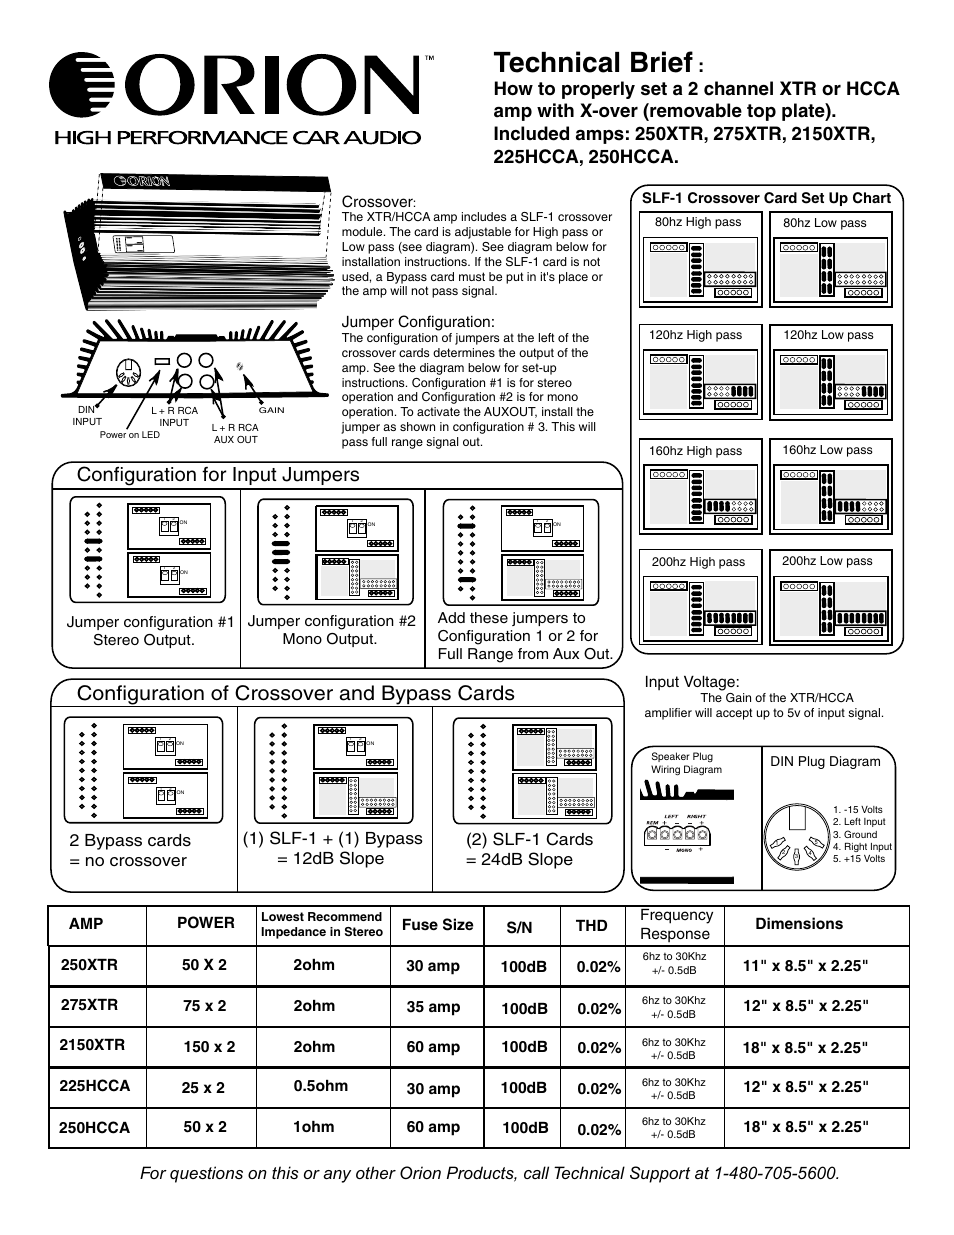 orion car audio 250xtr user manual 1 page also for 225hcca 8 Channel Amp Wiring Diagram at Orion Amp Wiring Diagram